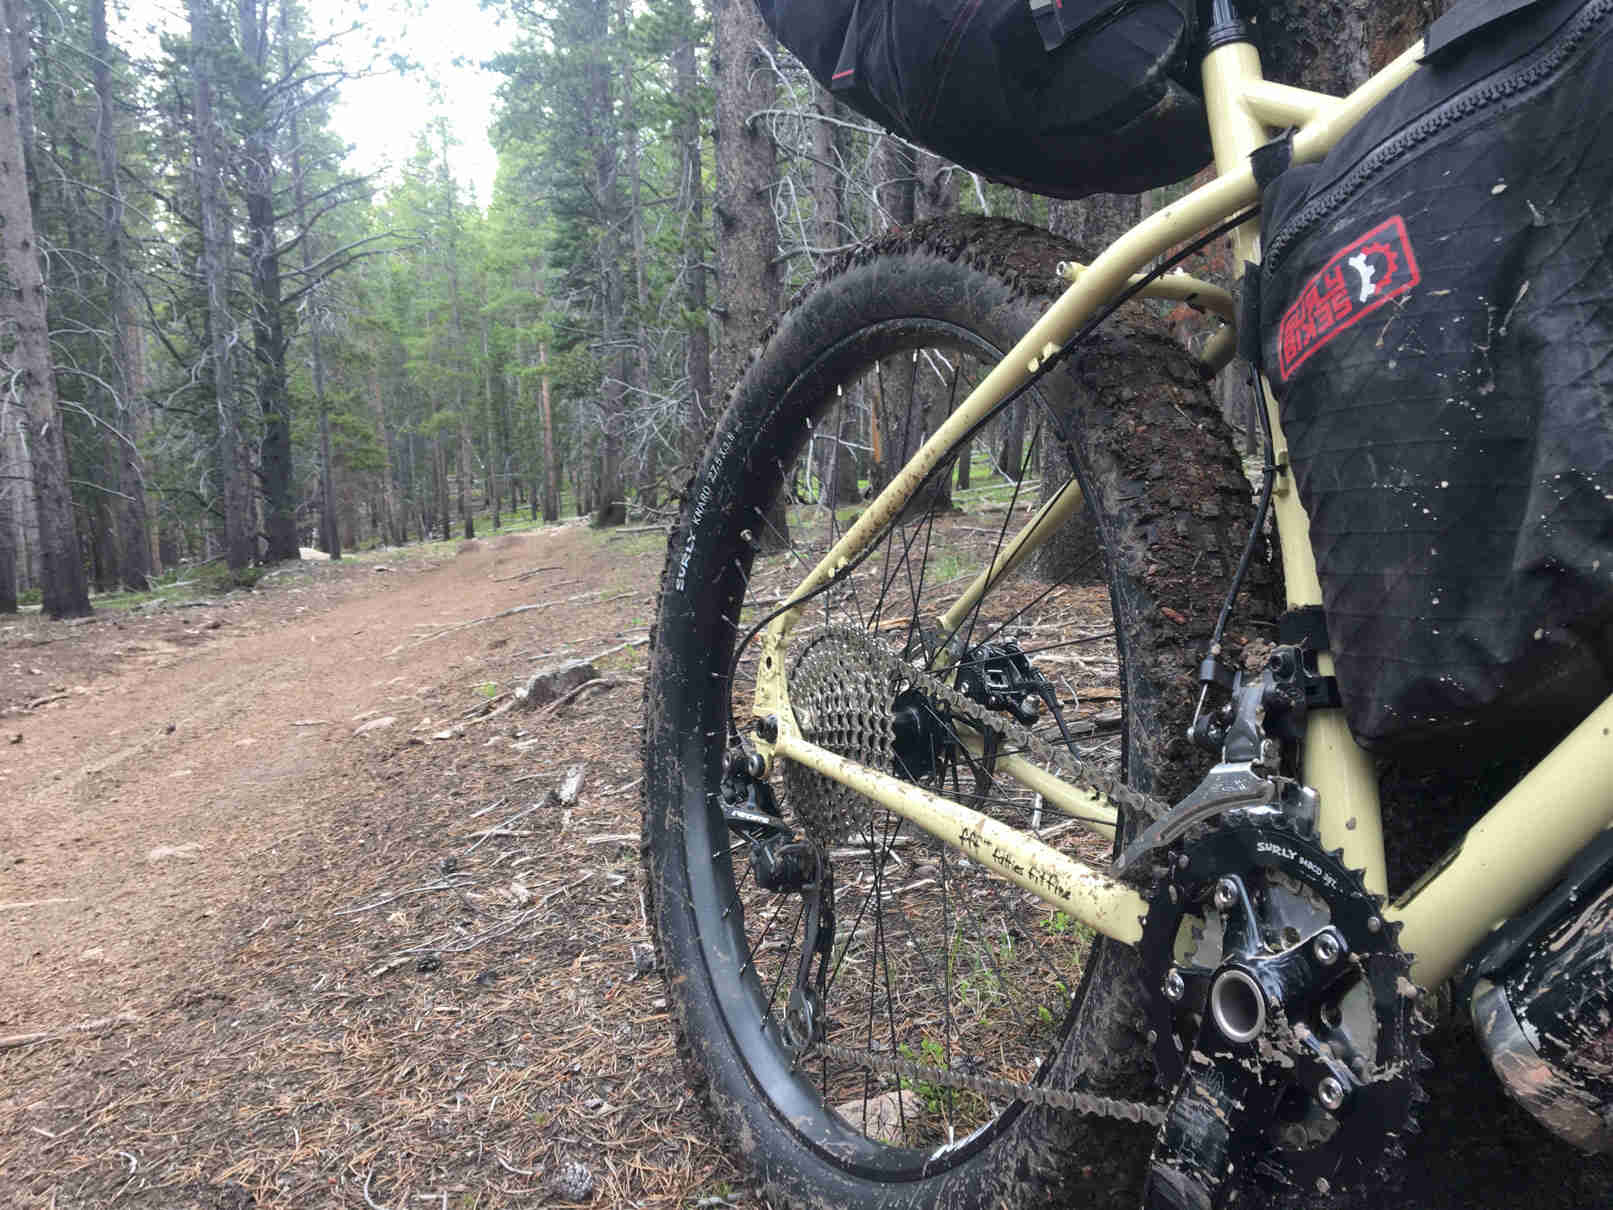 Back end of a Surly ECR bike on the the side of a dirt trail in a pine forest